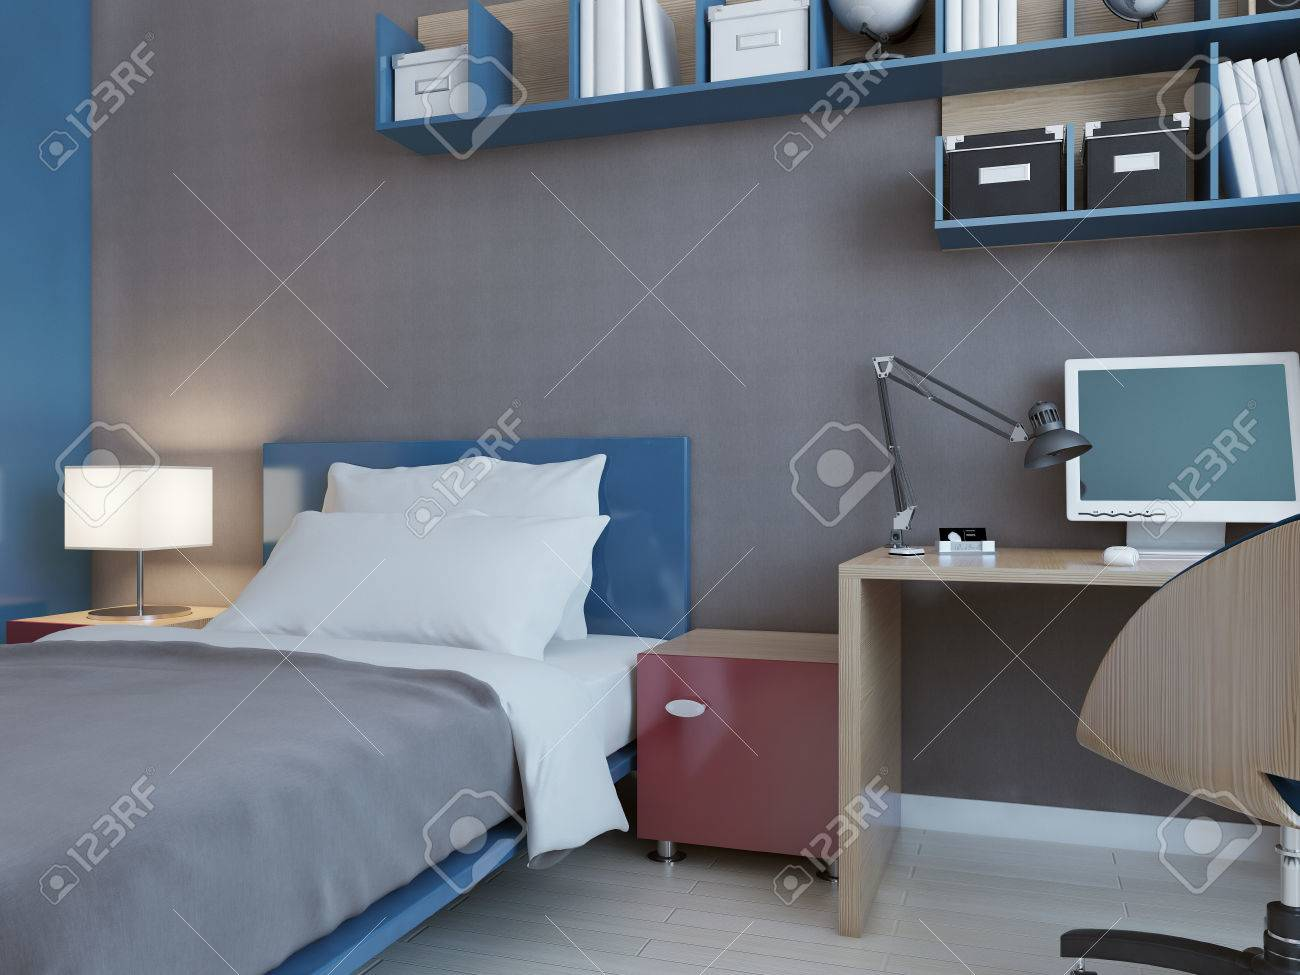 idea of children bedroom with grey walls blue and red decoration idea of children bedroom with grey walls blue and red decoration minimalistic wall system